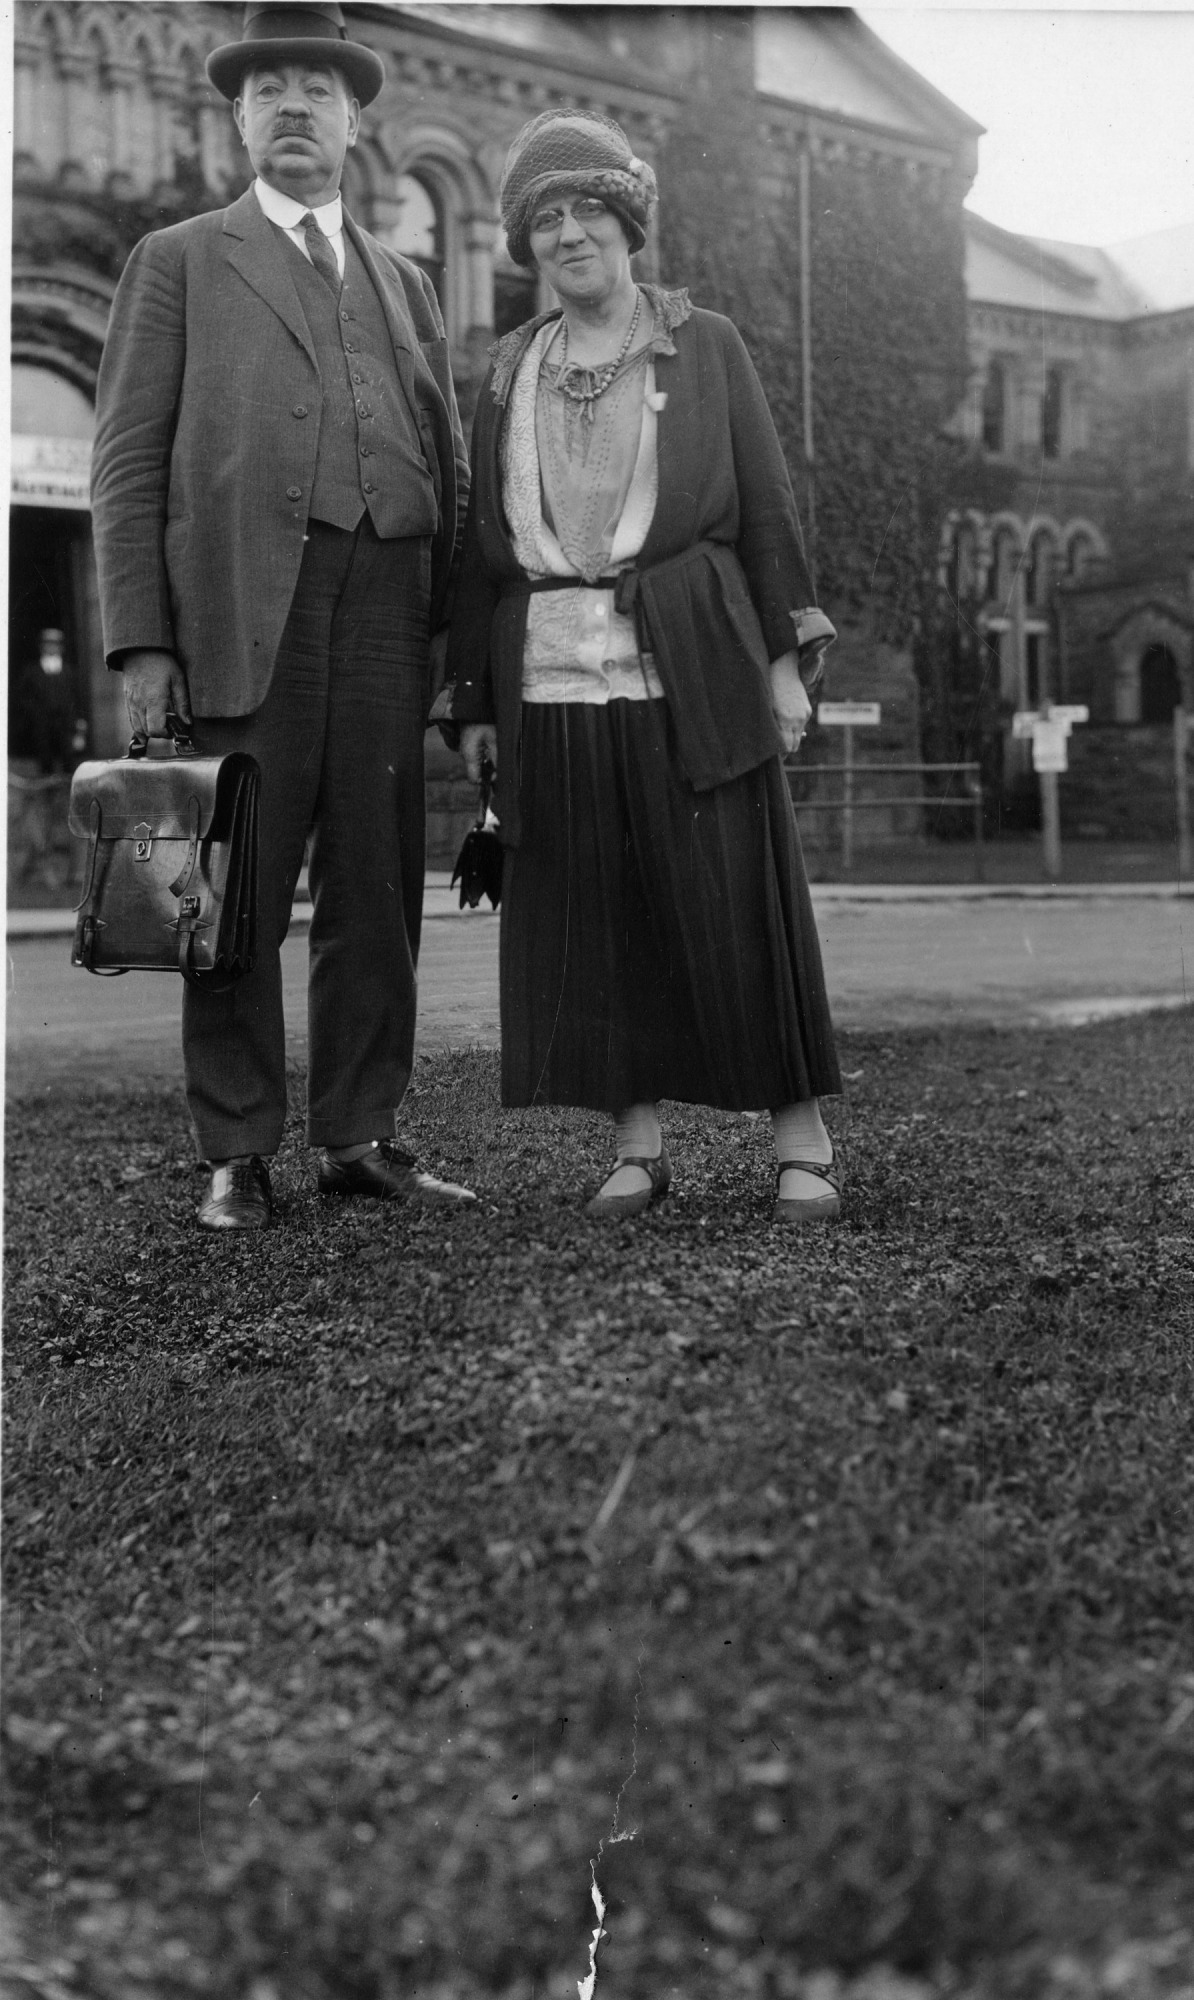 left to right: Edwin Emery Slosson (1865-1929) and May Gorslin Preston Slosson (1858-1943)